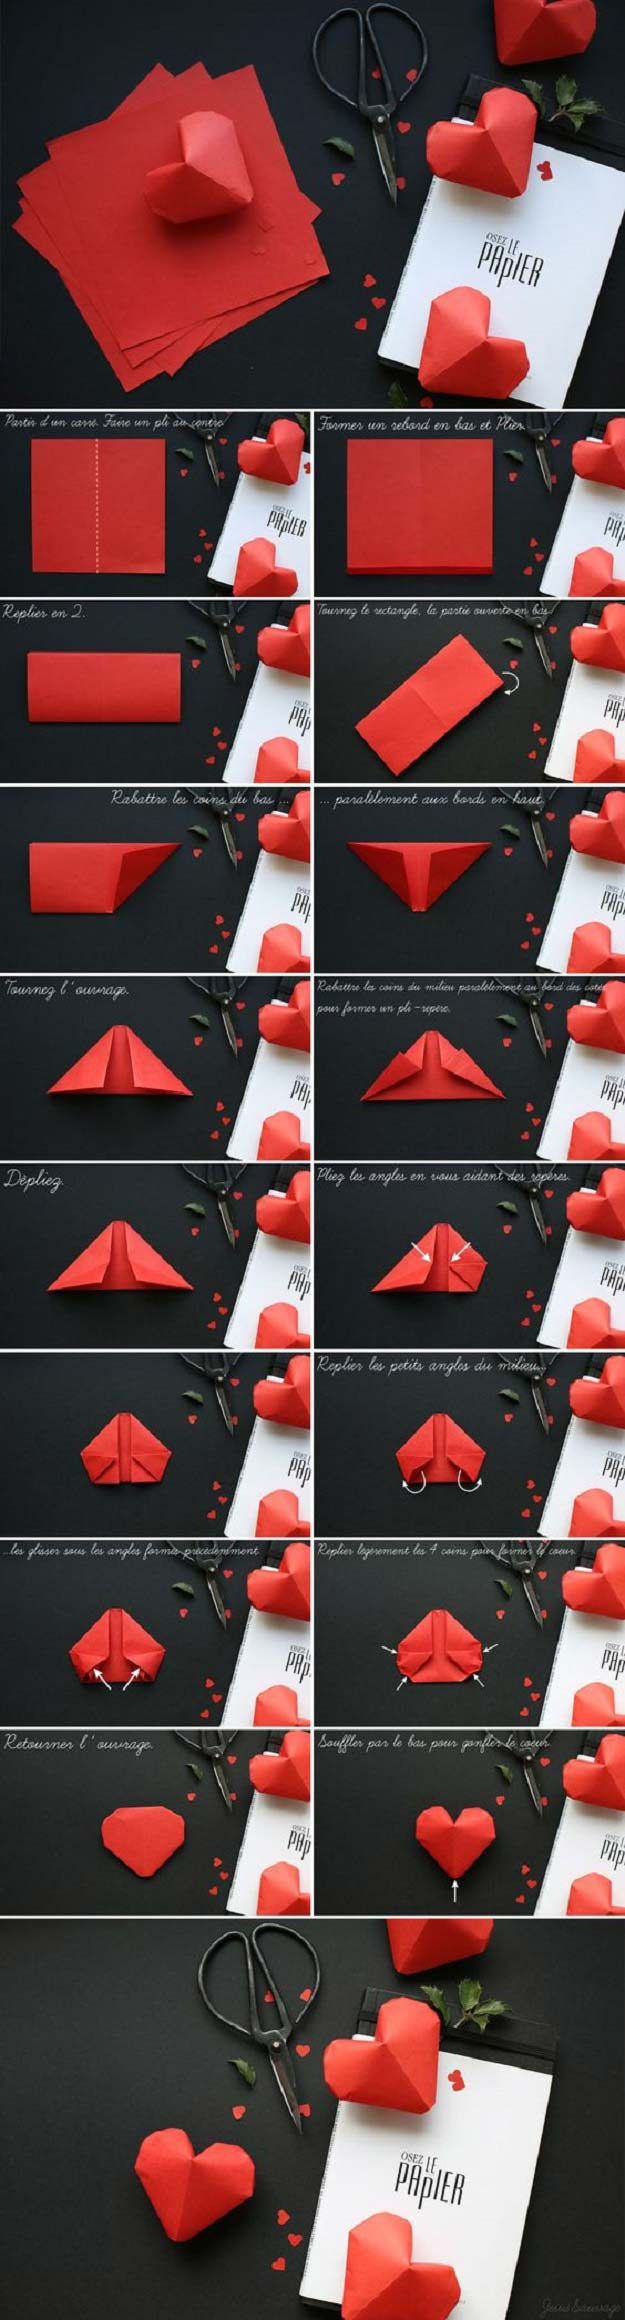 Easy Origami 3D Christmas Tree Instructions - Kids Can Make | 2320x625